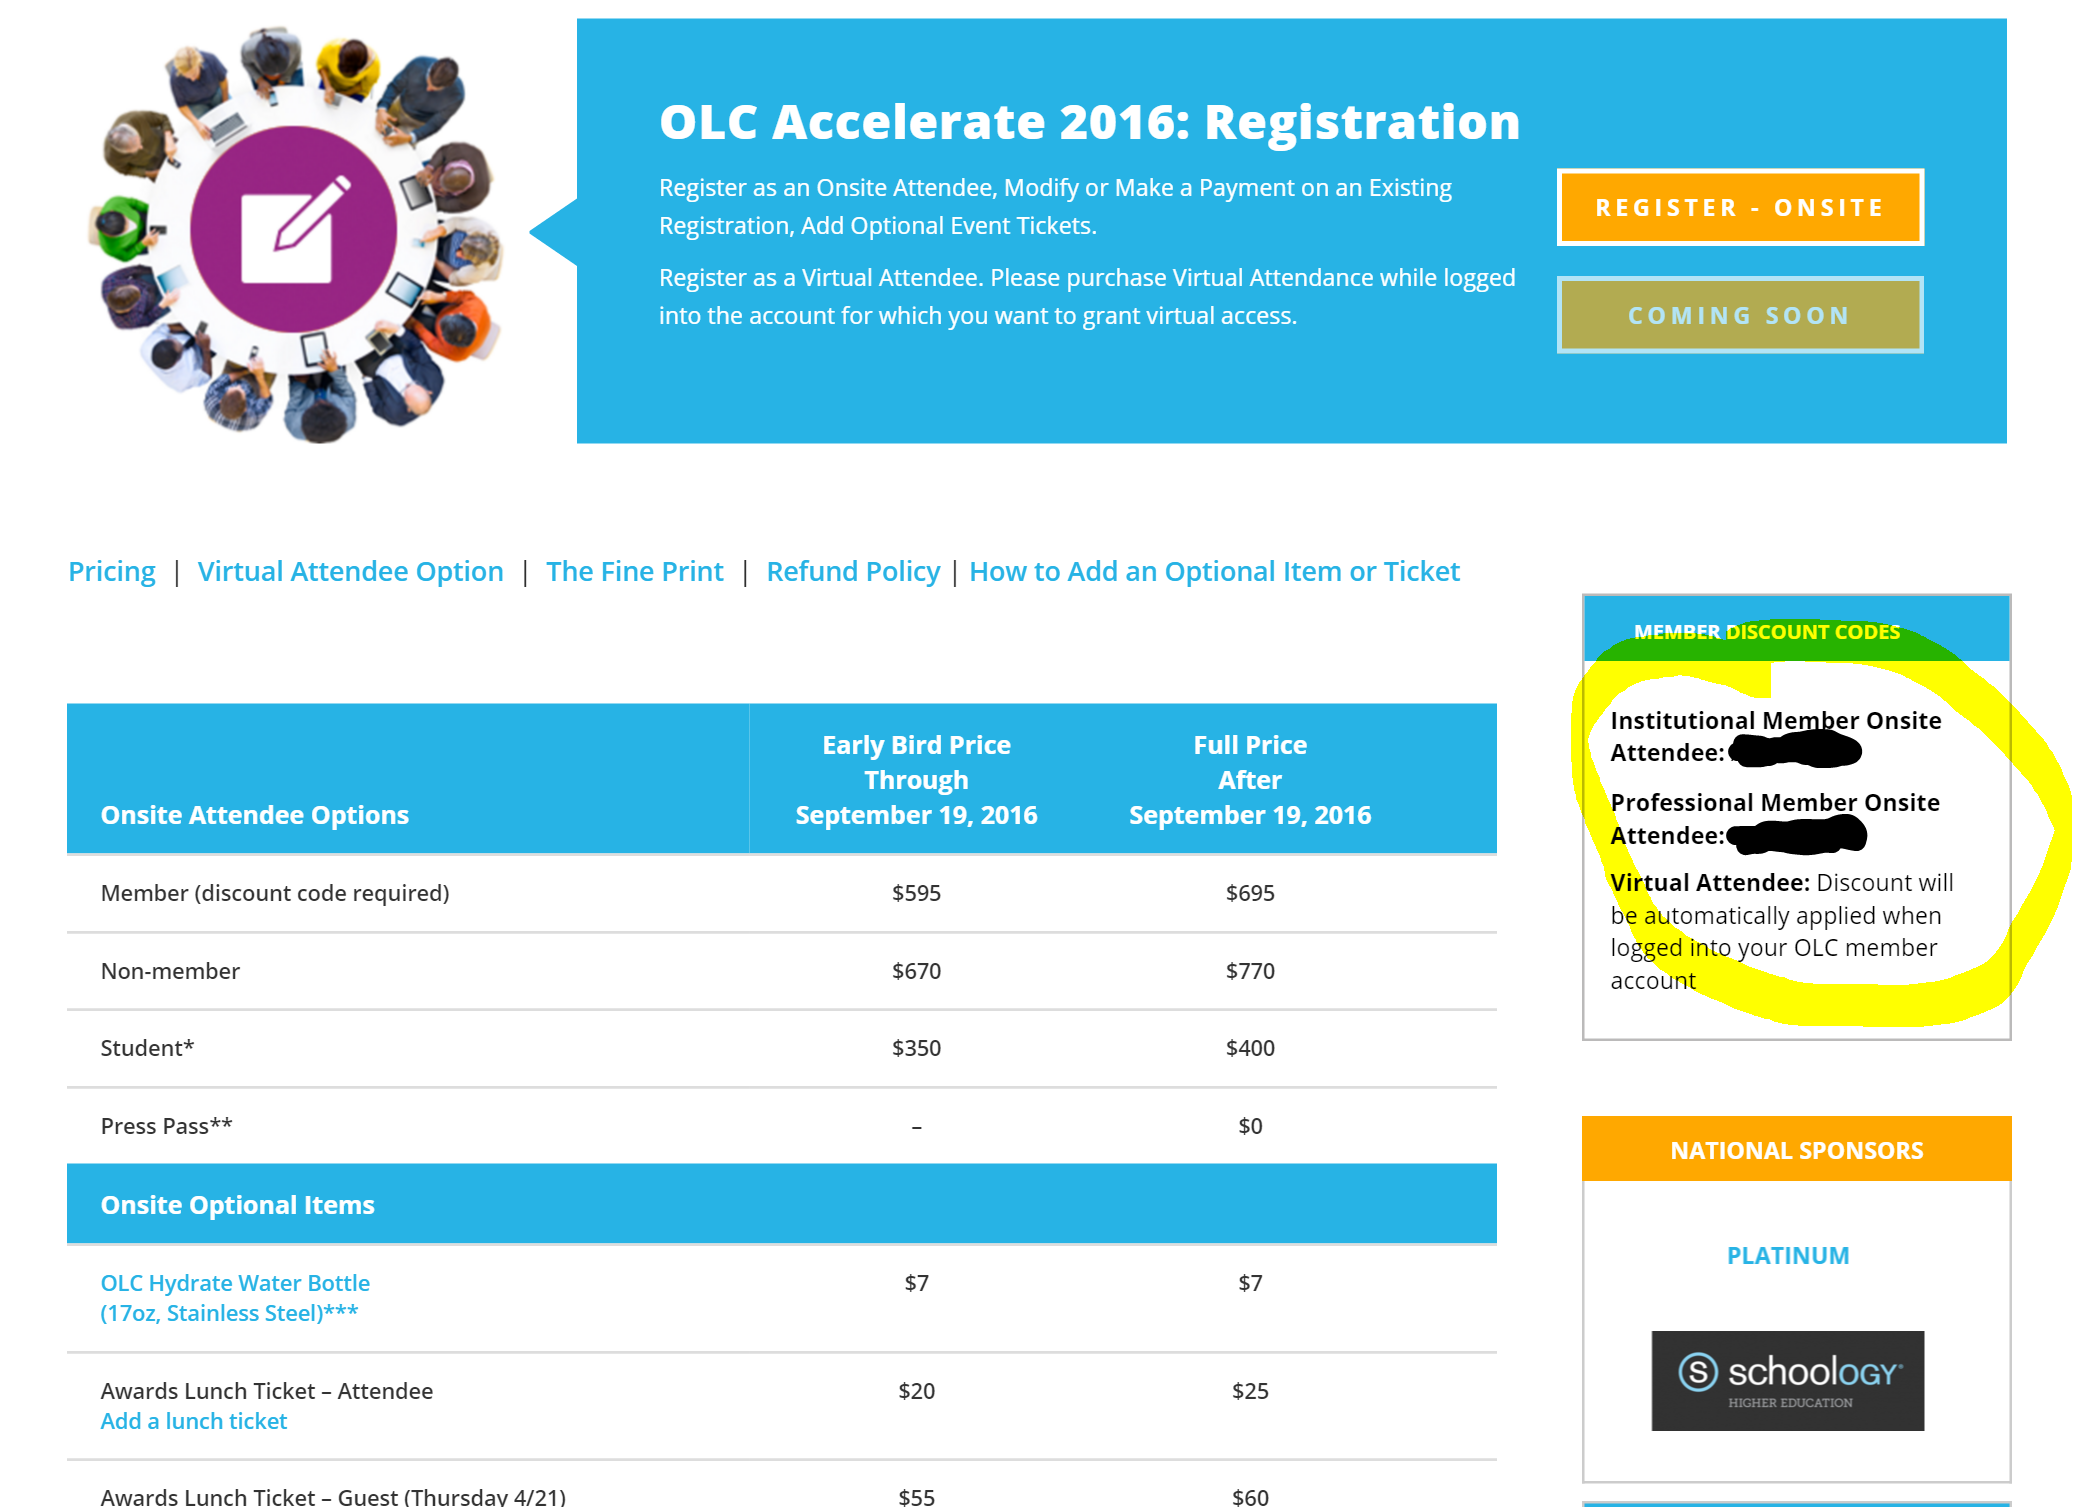 OLC Innovate: Where Do I Find the Member Discount Code for